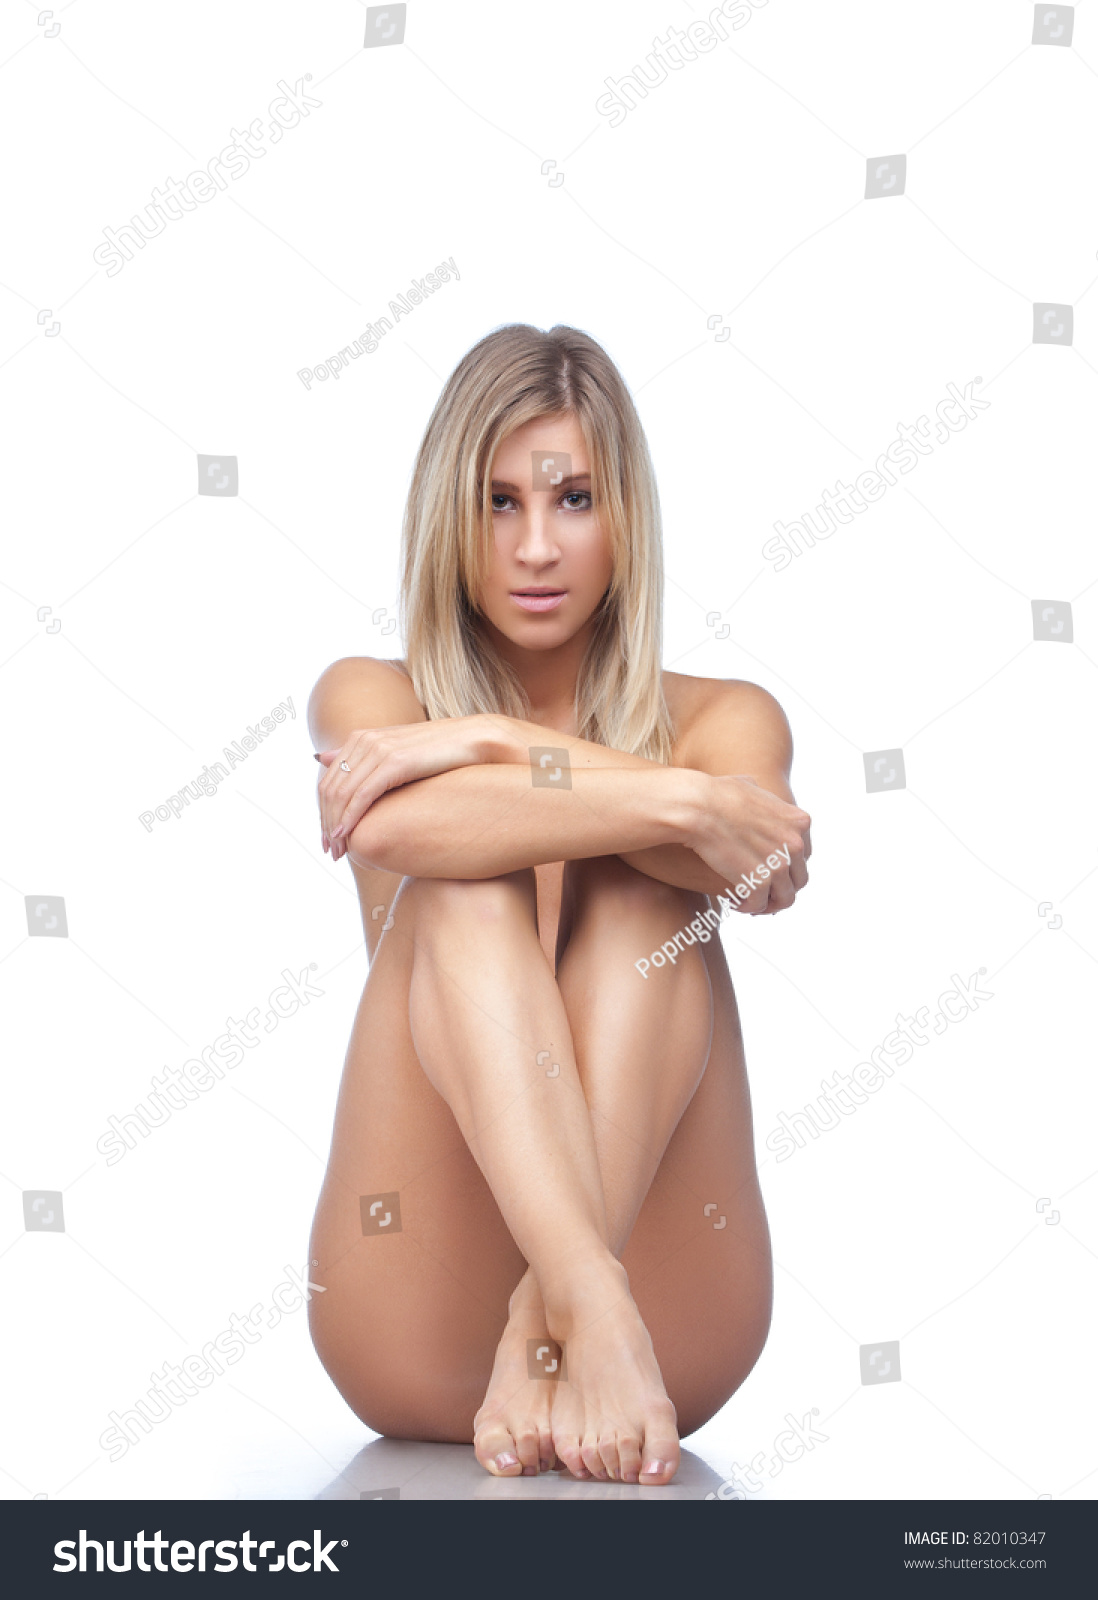 Beautiful Naked Blonde Woman Sitting On The Floor Isolated Over White